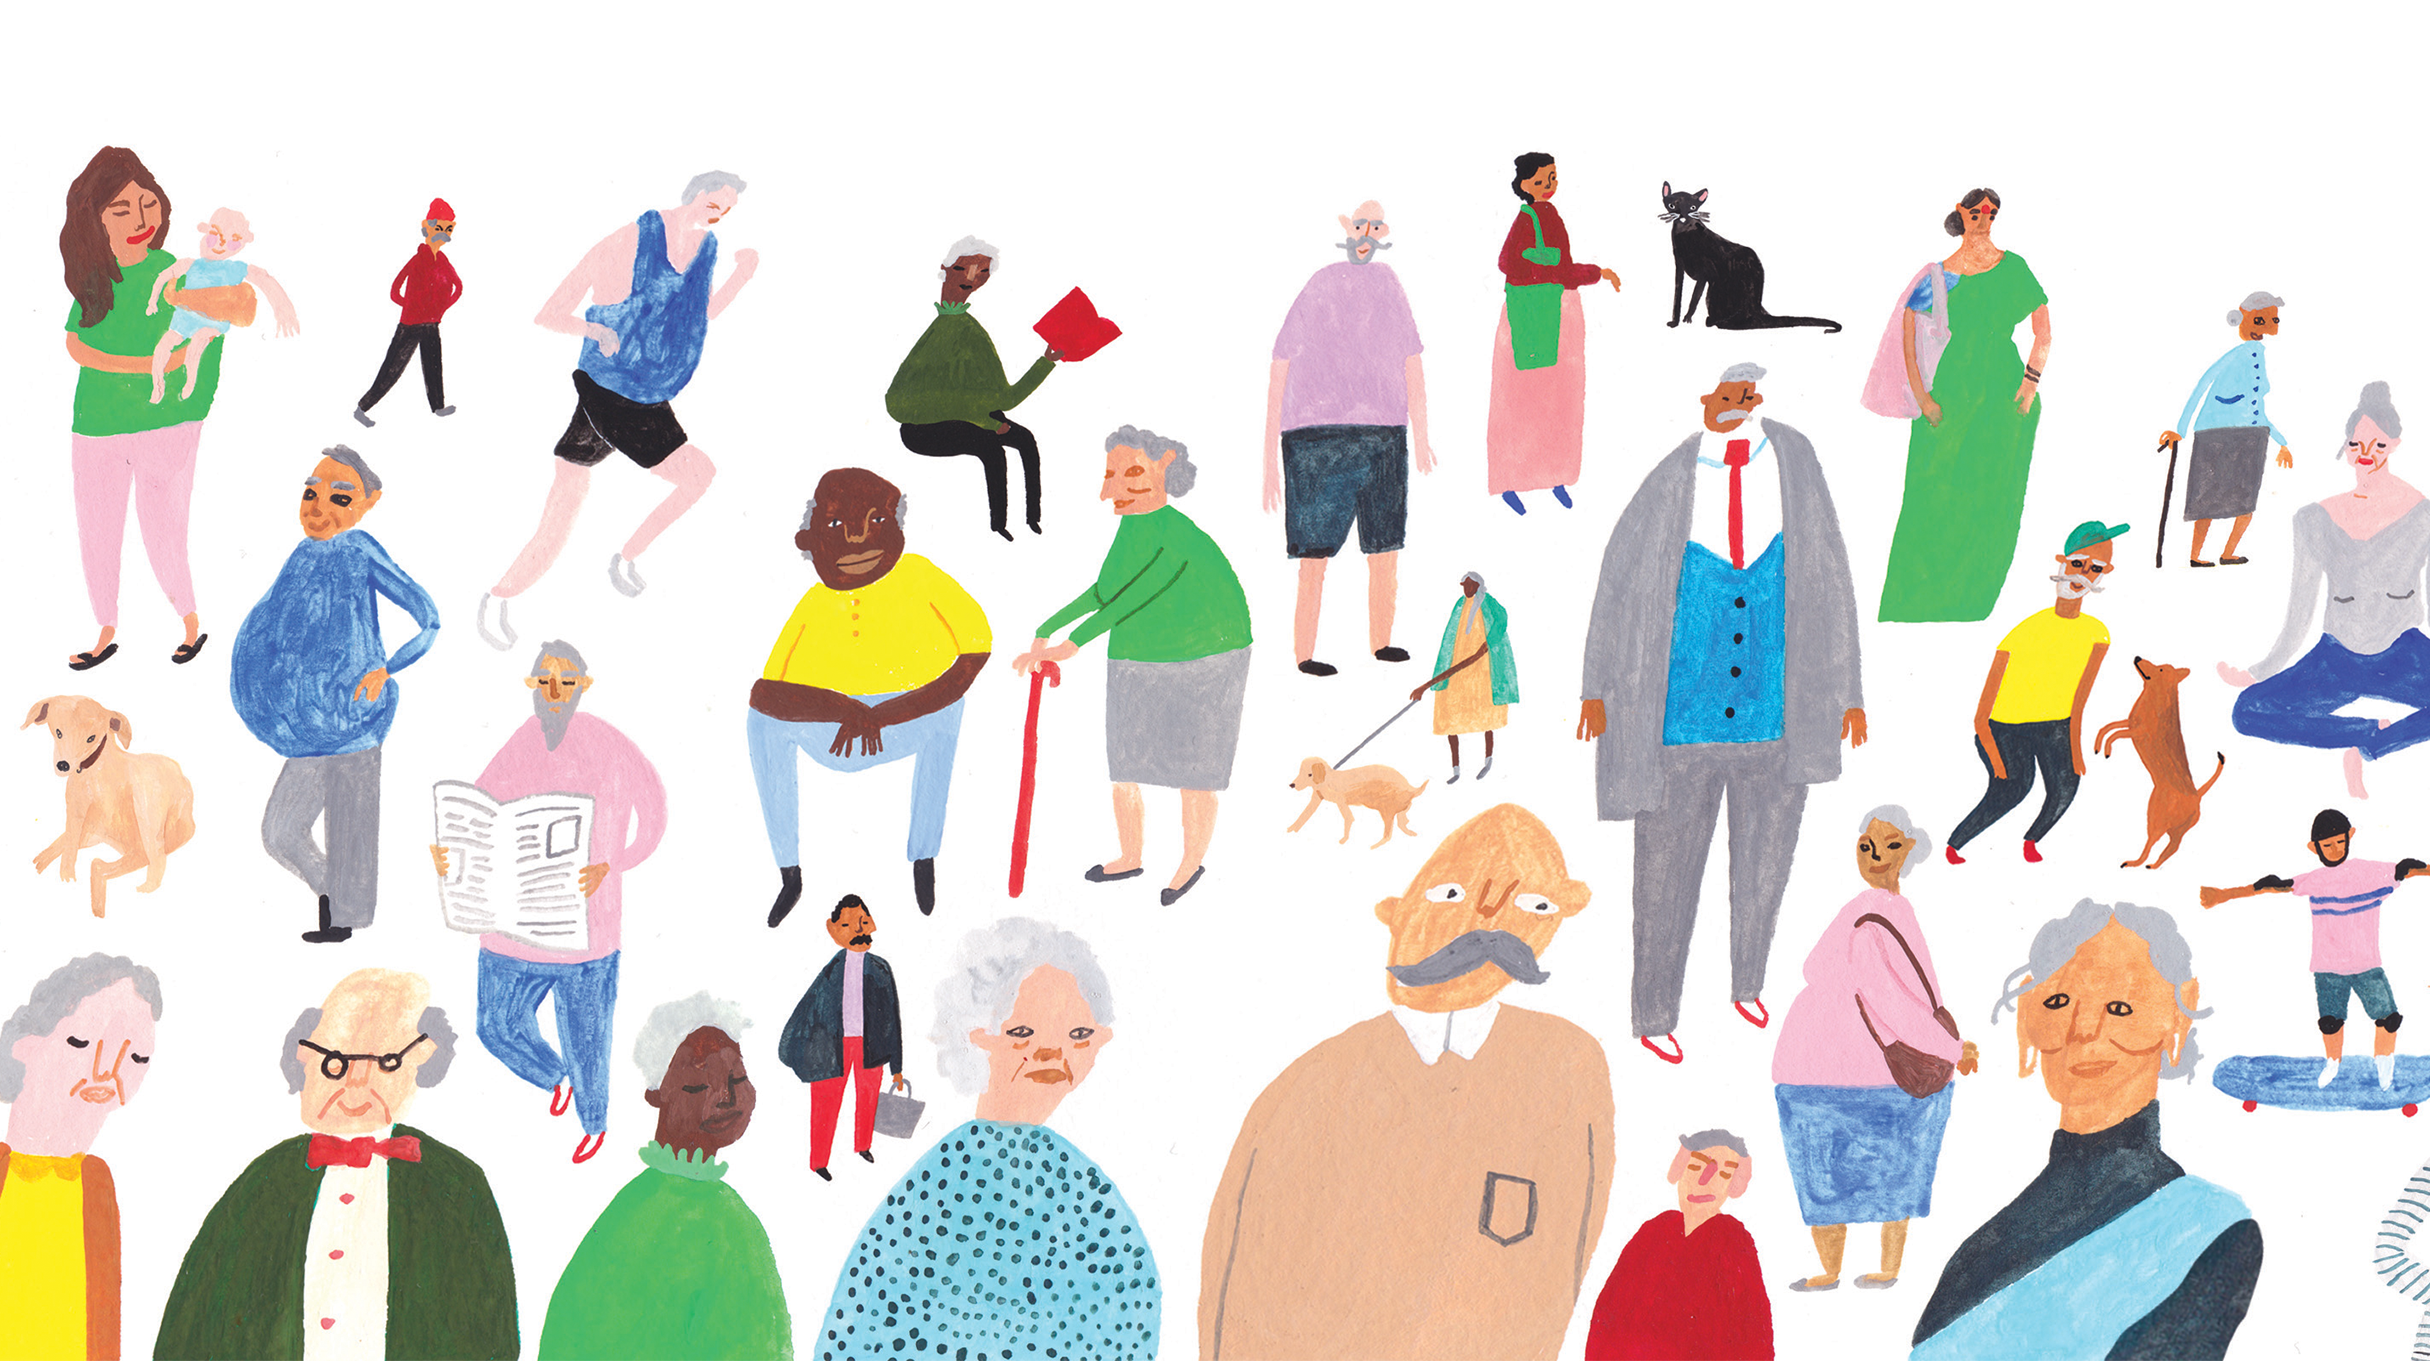 Helping Hand - custom illustrations - diverse range of people